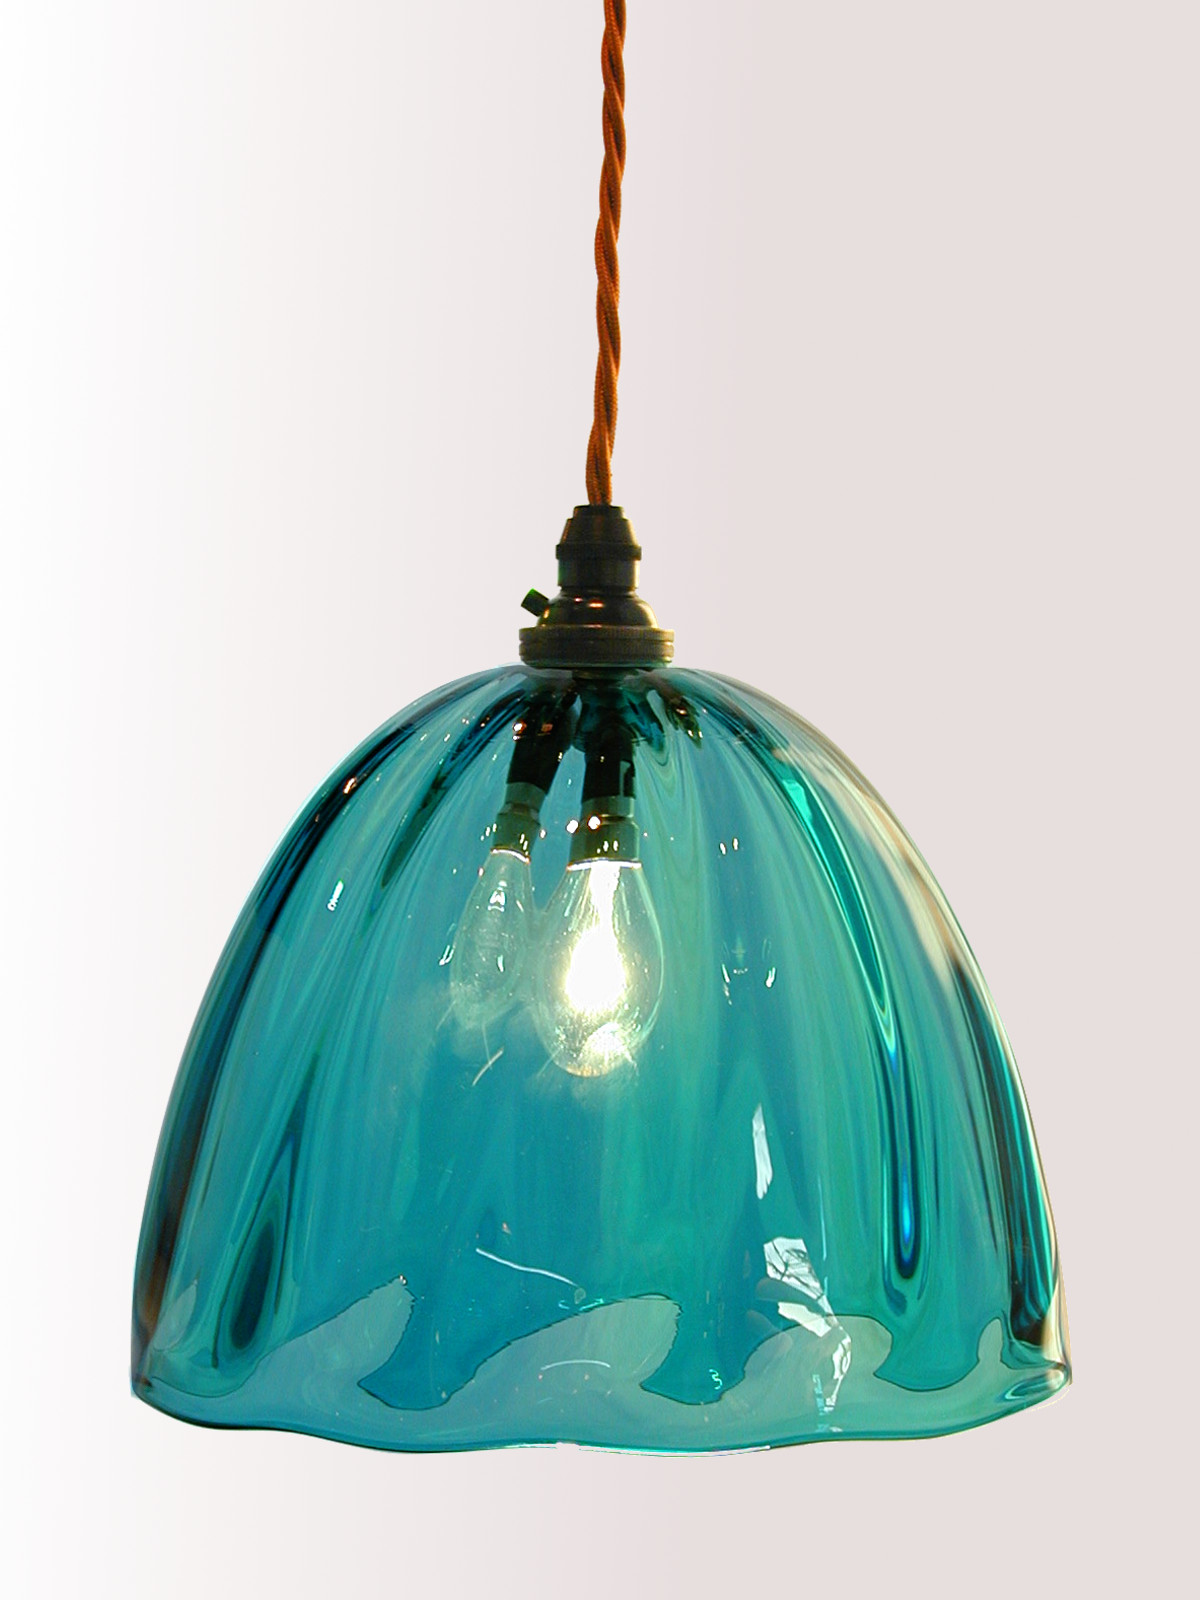 Teal hand blown glass pendant lampshade